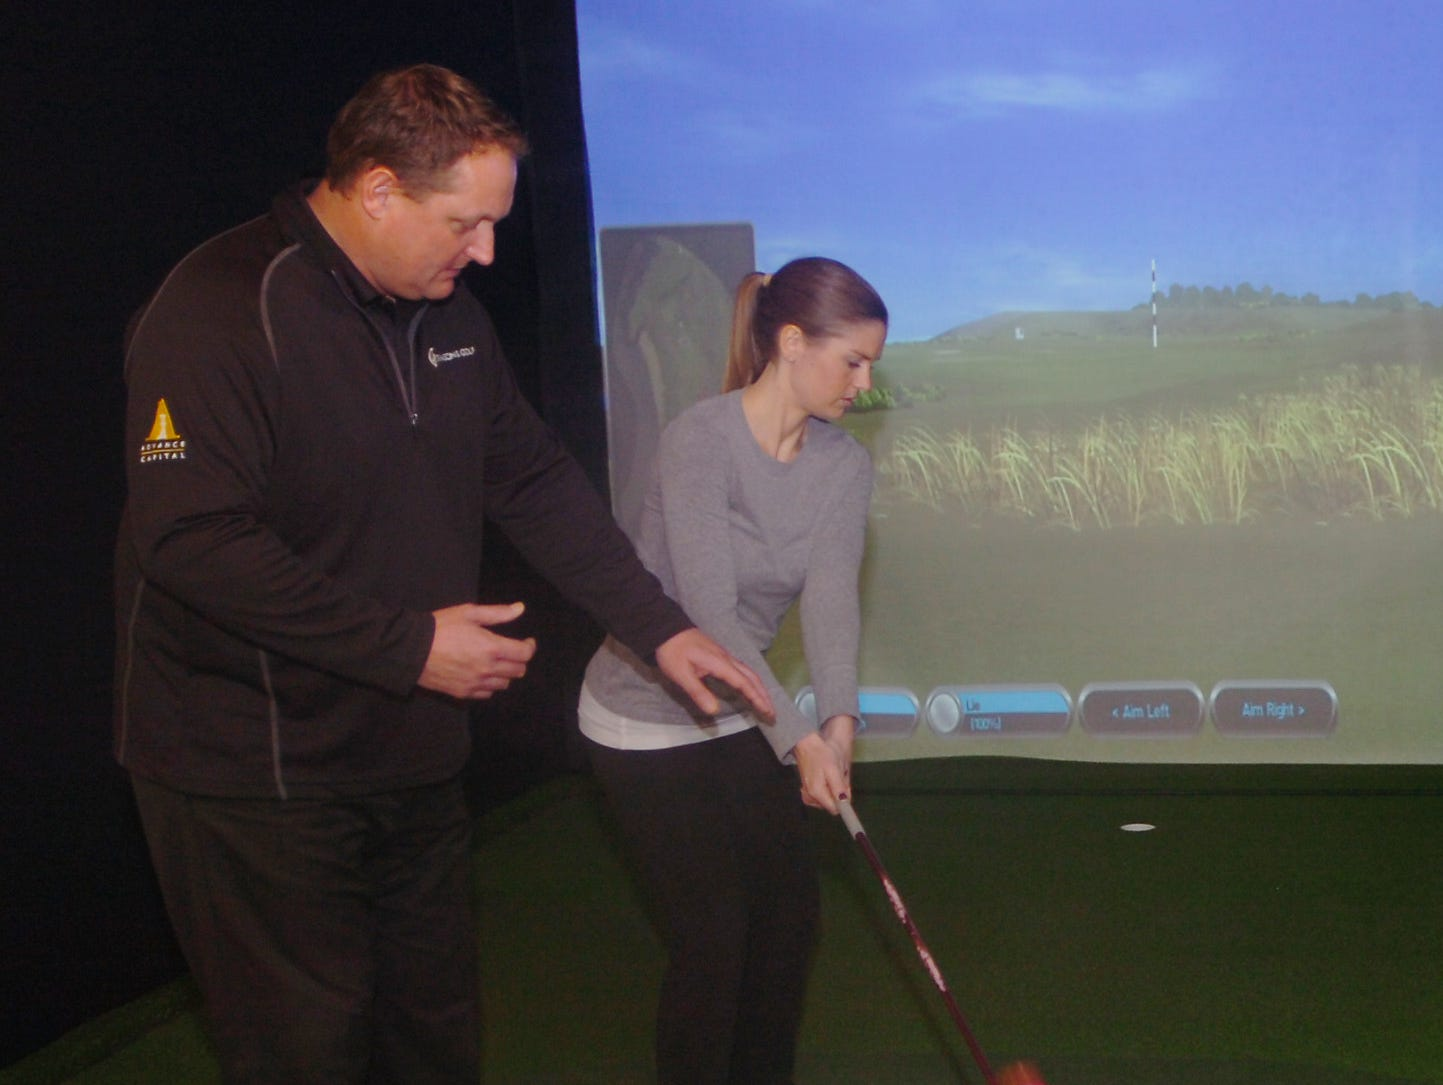 Bob Krause gives instruction to Libby Mikulich at the indoor golf facility in Birmingham.